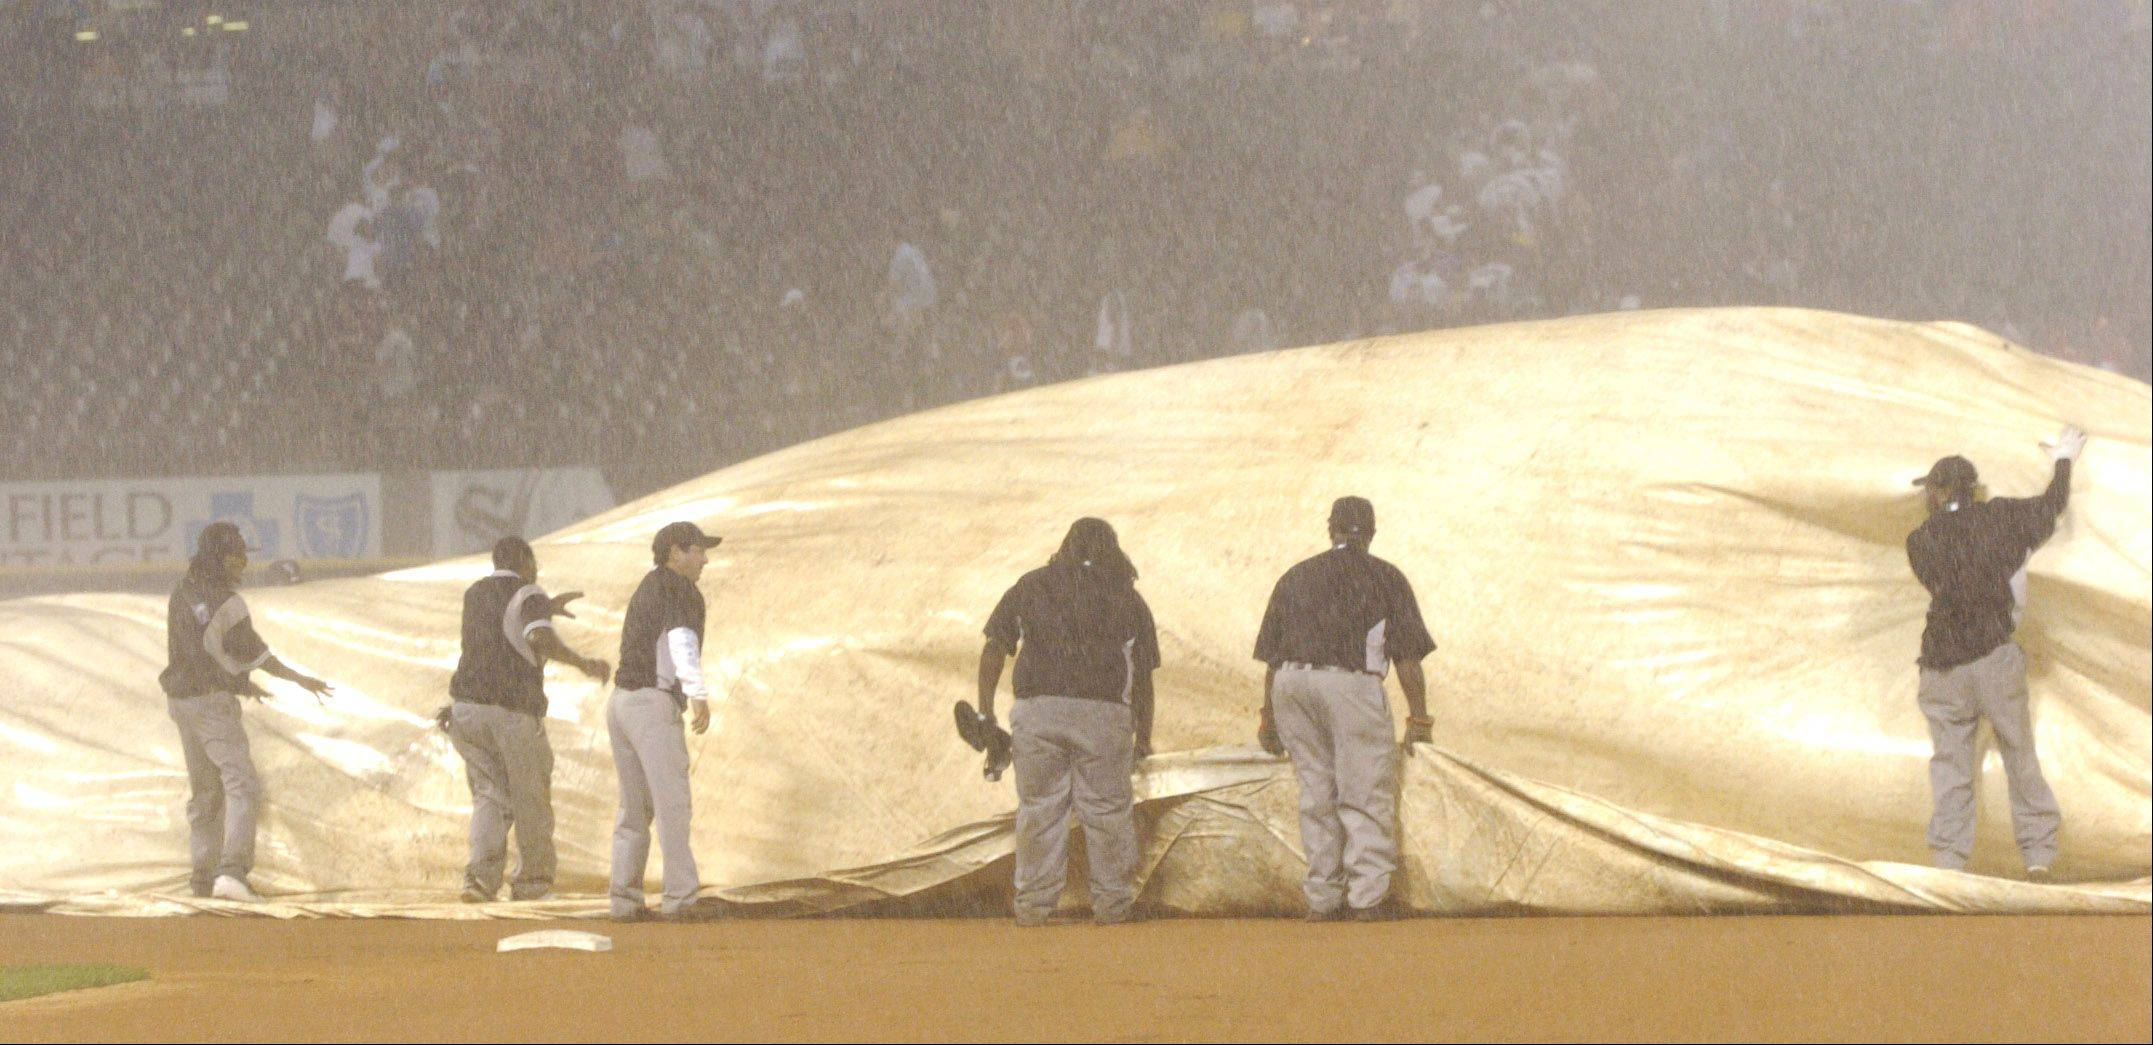 The grounds crew covers the field after a storm rolls in to delay the city series between the Chicago White Sox and Cubs at U.S. Cellular Field, in game 2.